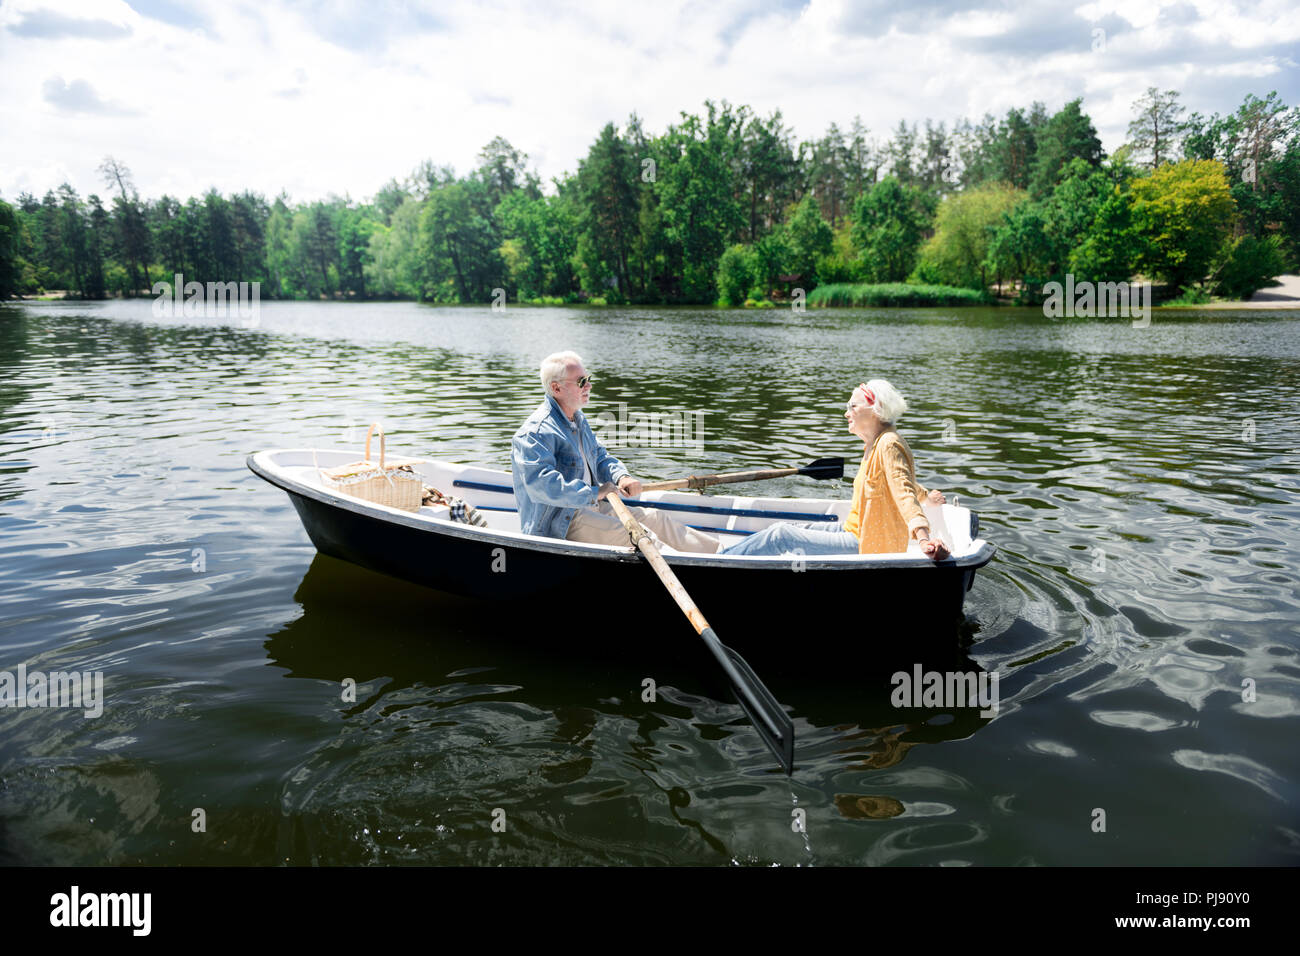 Aged Couple Having Nice Boat Ride While Having Very Romantic Date Stock Photo Alamy